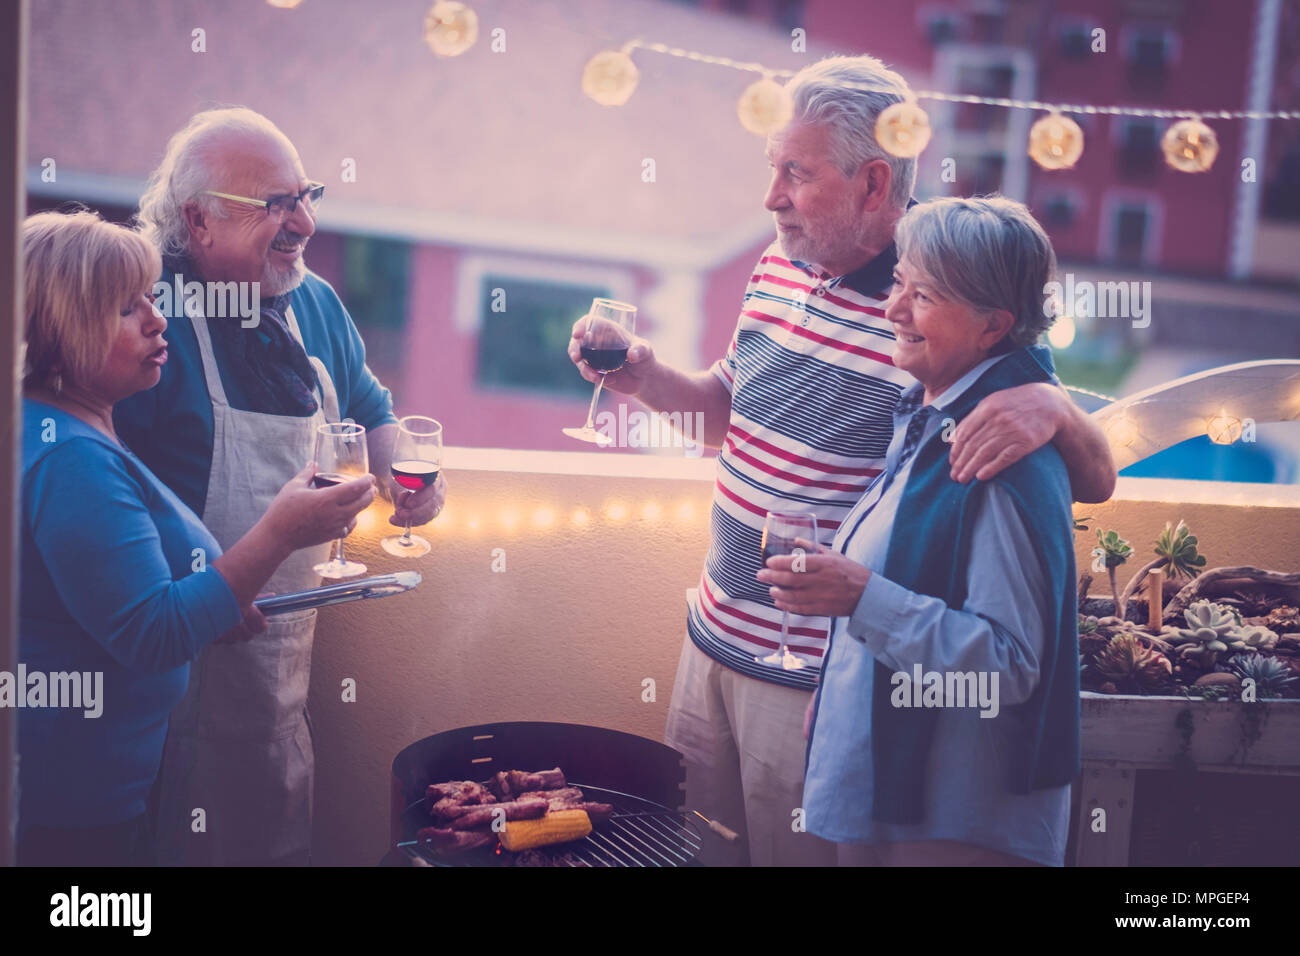 group of friends seniors having a bbq barbeque together on the rooftop with beautiful view on other buildings. Bulb lights in the terrace and smile ha - Stock Image